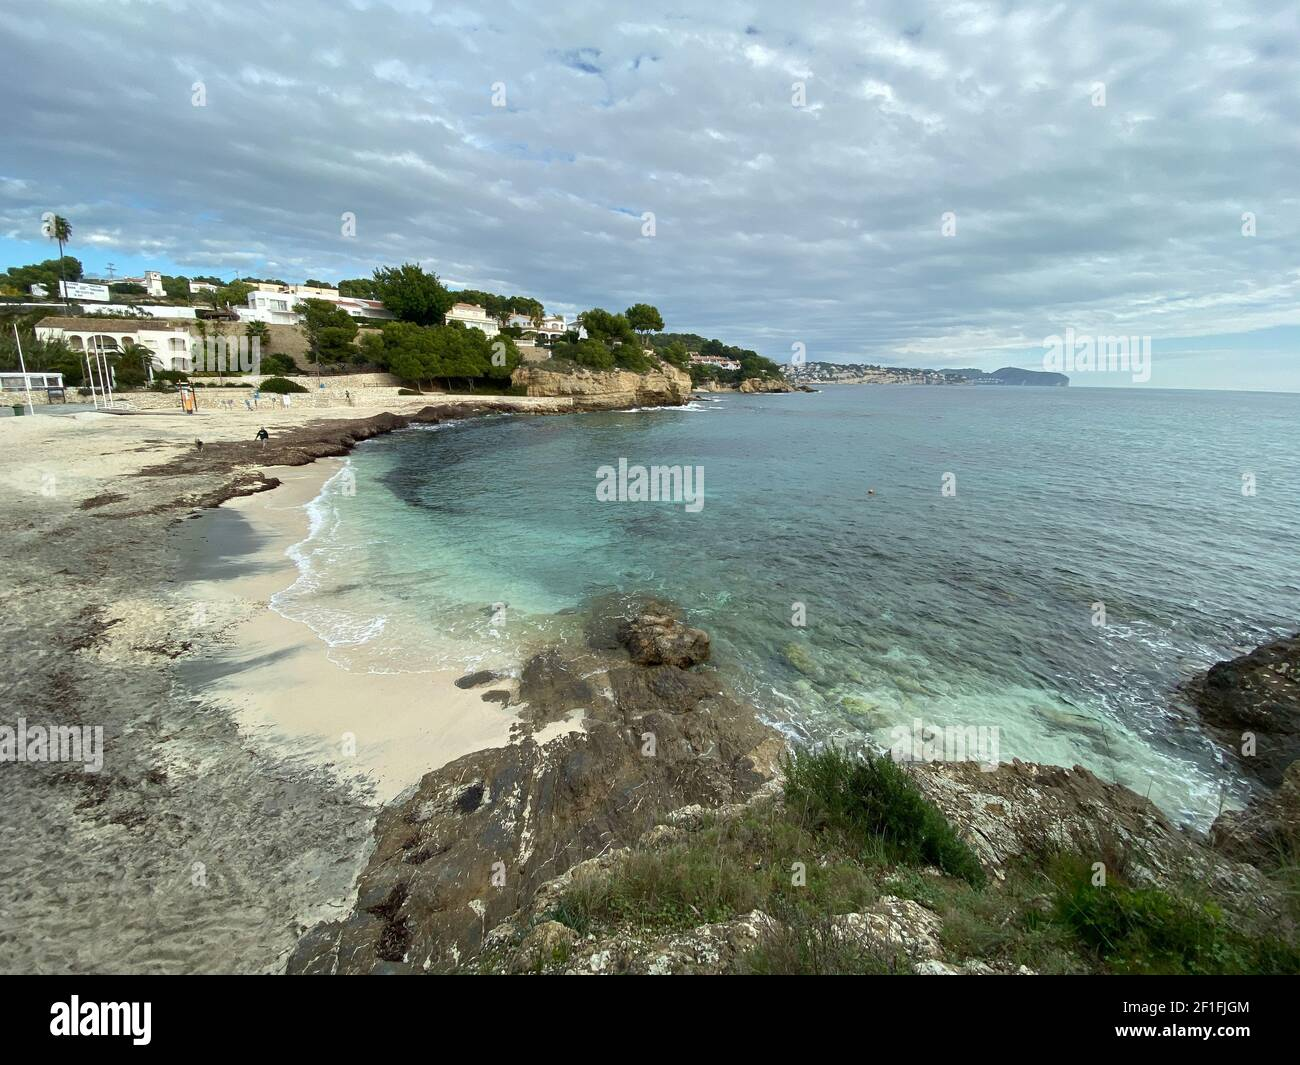 Sea waves lash line impact rock on the beach, located in Alicante, Spain, Stock Photo